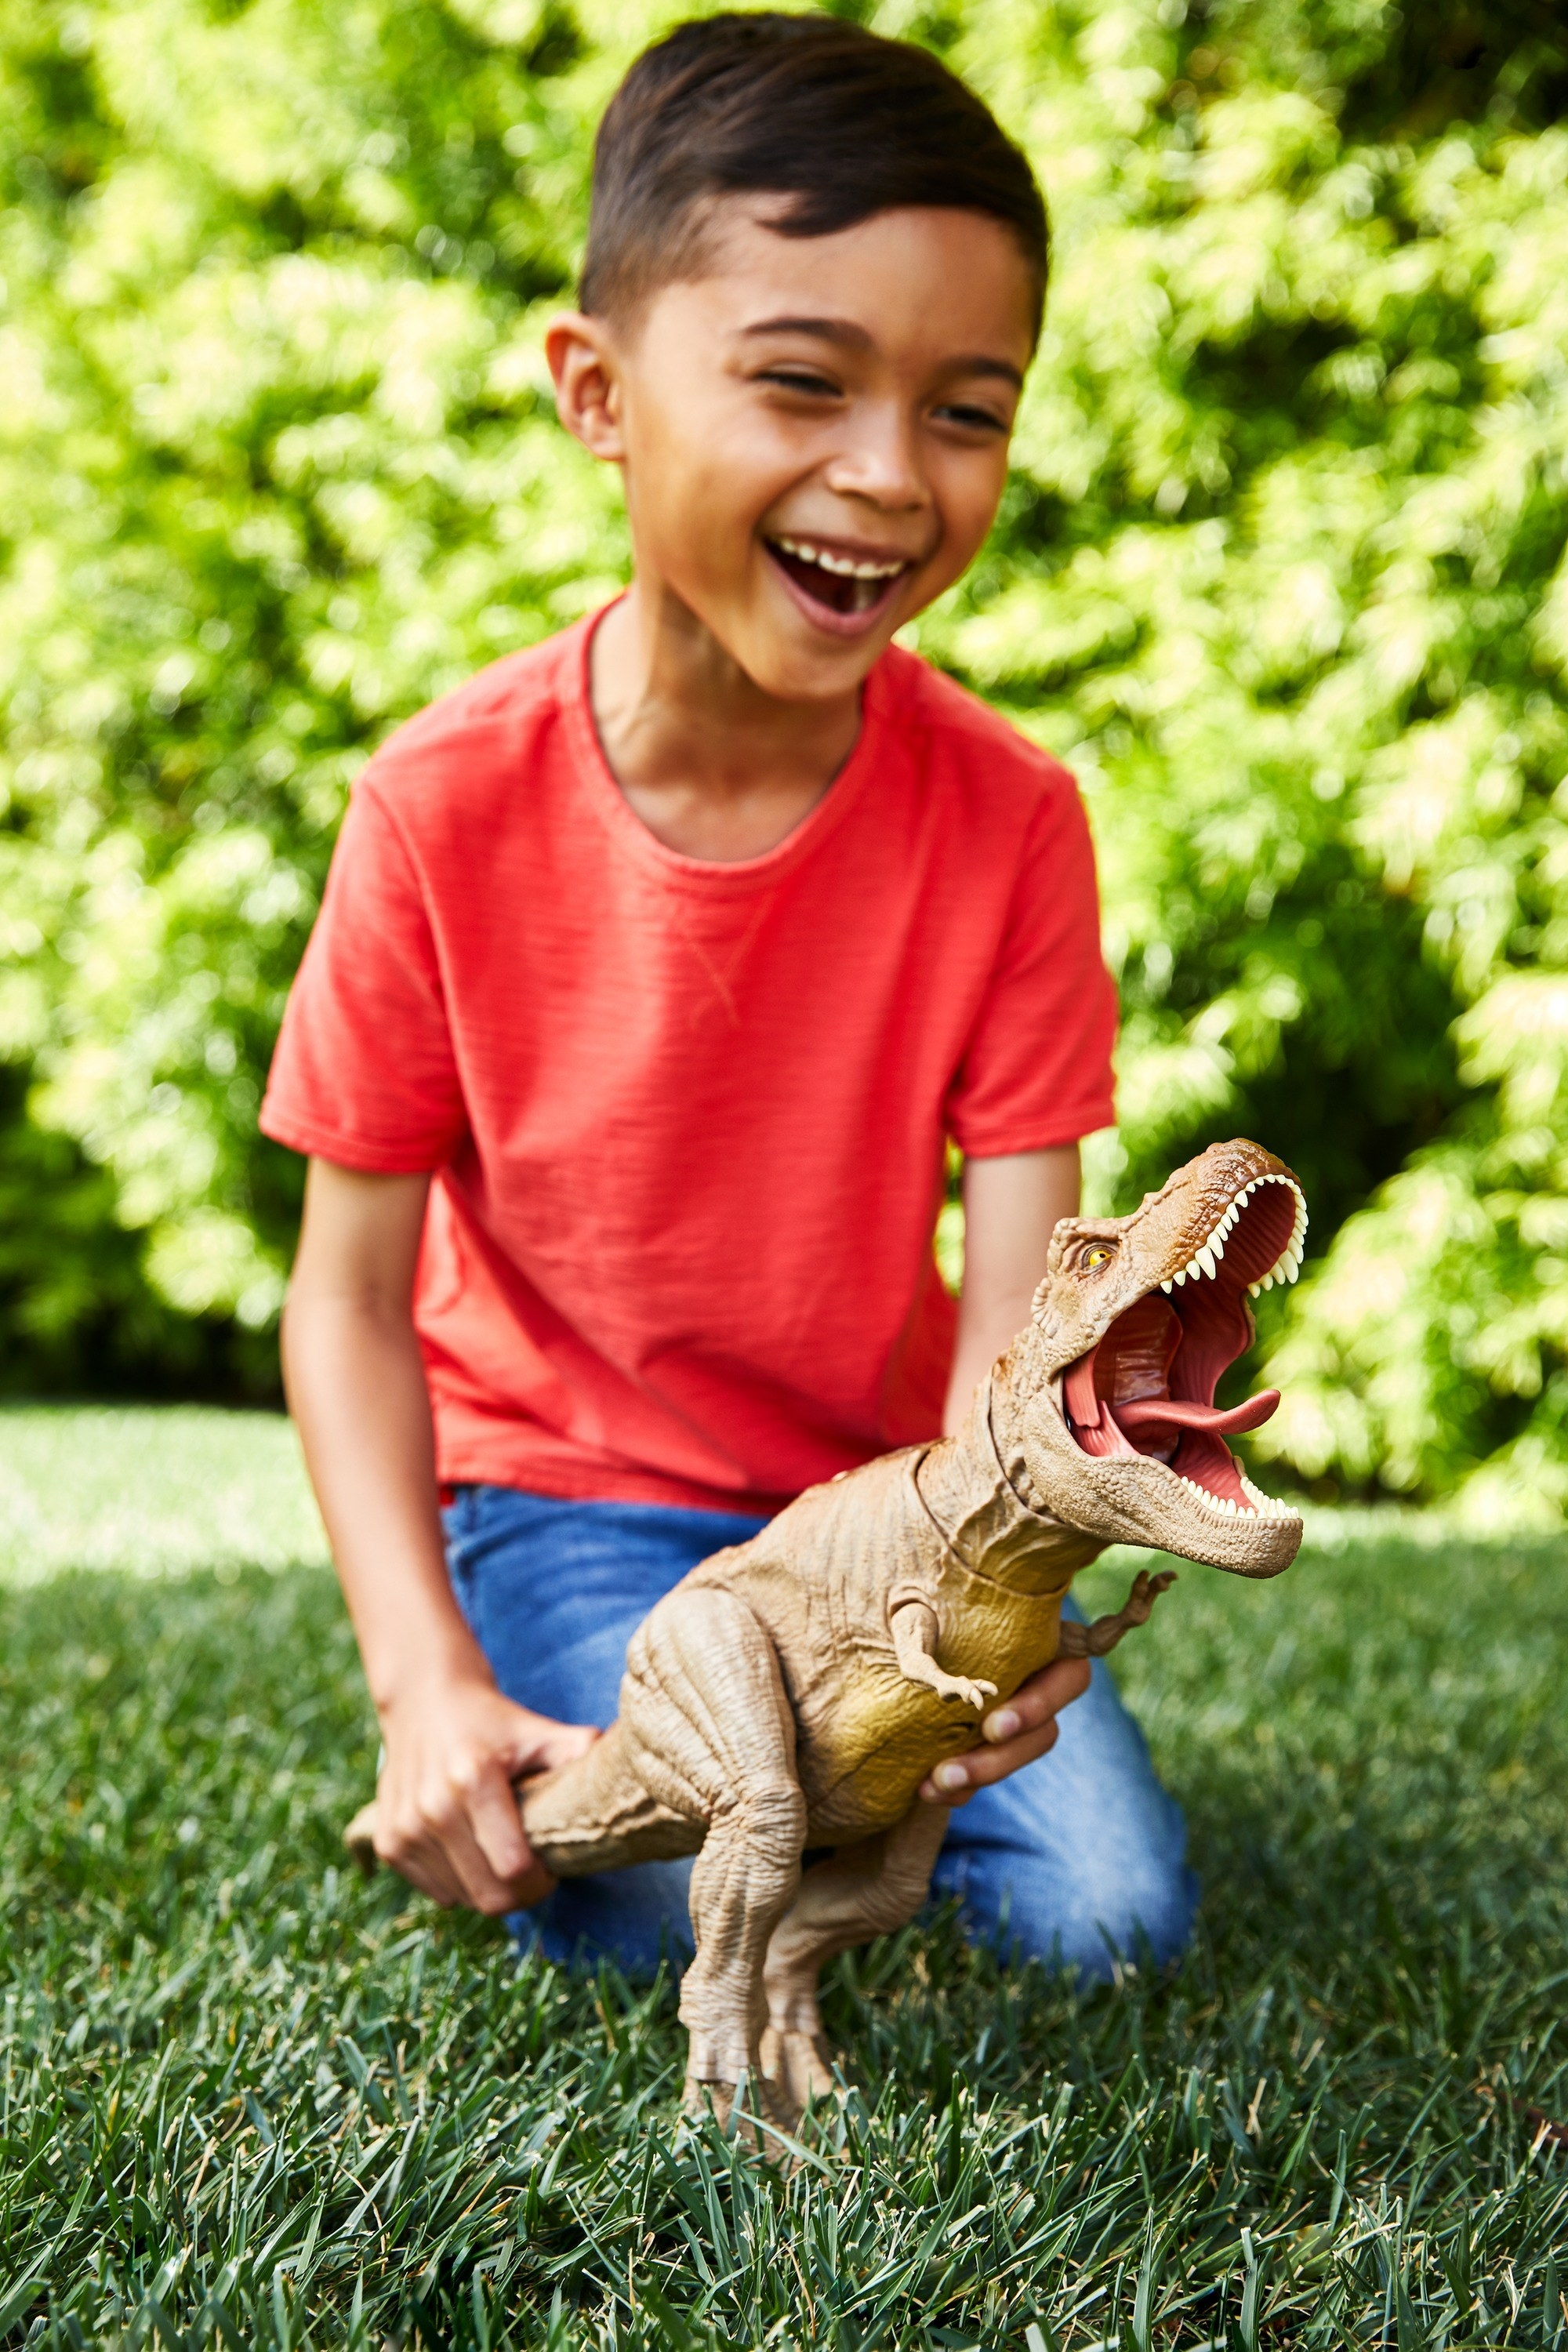 child playing with a t-rex action figure in the grass